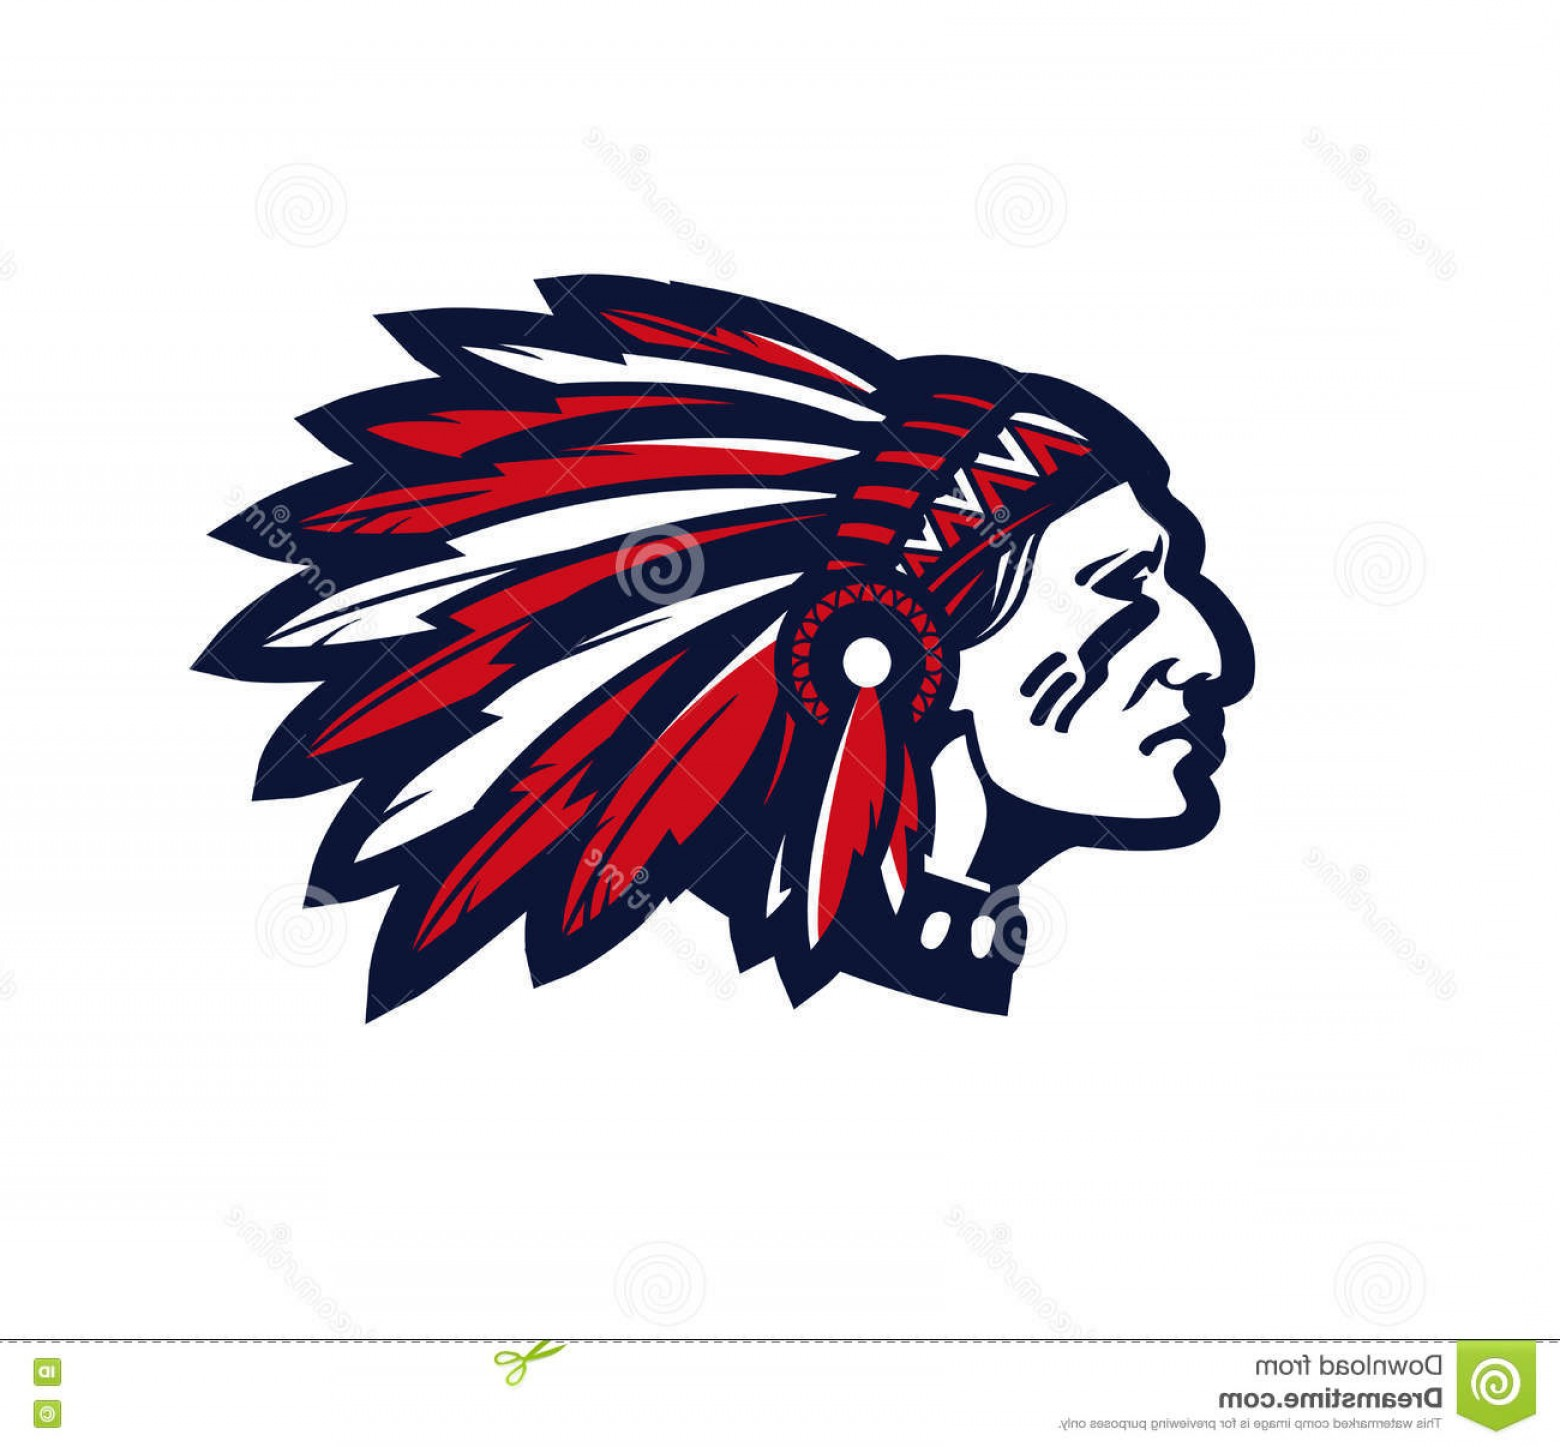 American Indian Chief Vector: Stock Illustration American Indian Chief Vector Logo Icon Isolated White Background Image